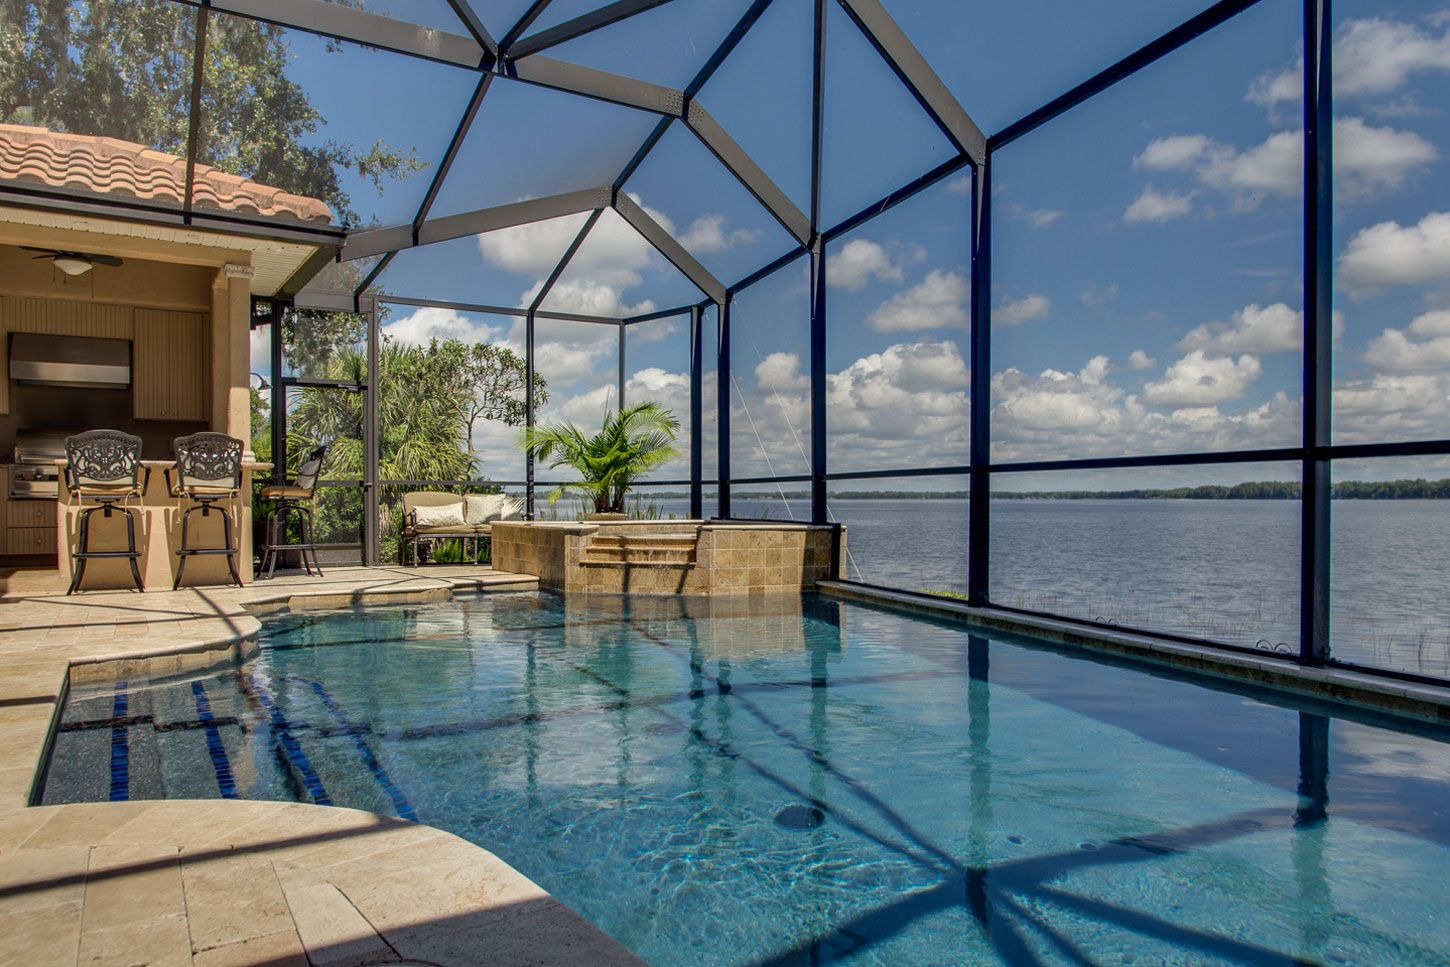 Pin by Homes by Southern Image on Pools & Outside Living ... on Southern Pools And Outdoor Living id=58224